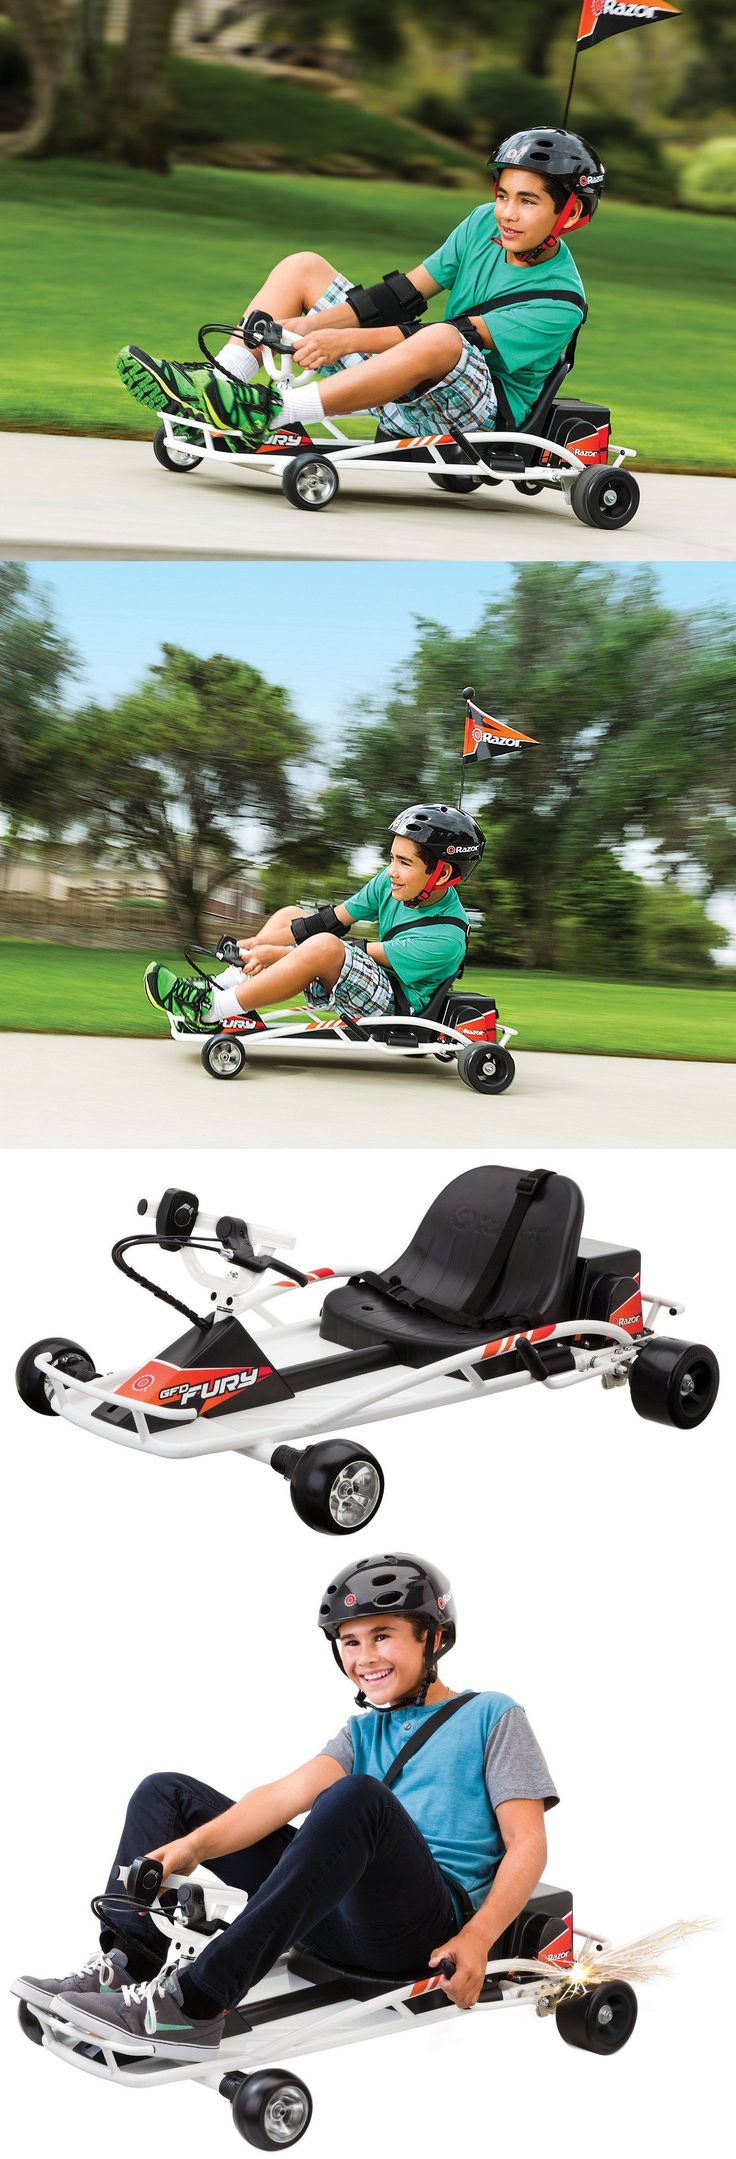 Complete Go-Karts and Frames 64656: Electric Go Kart Razor Dune Buggy Cart Scooter Battery Throttle Ride On Toy New -> BUY IT NOW ONLY: $381.97 on eBay!